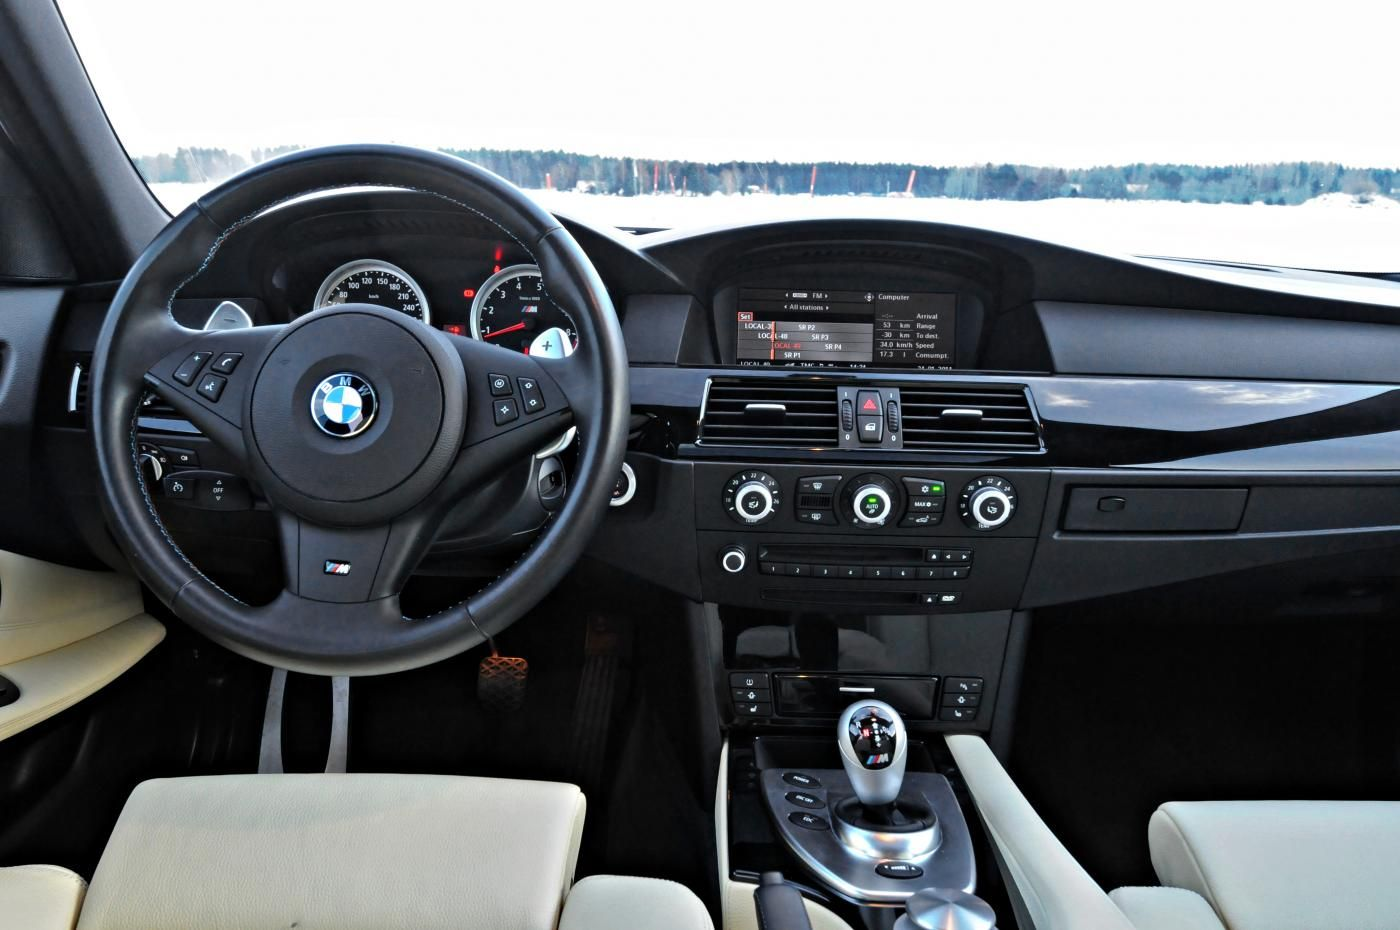 The interior does a good job of making you feel at home and comfortable in the E60.